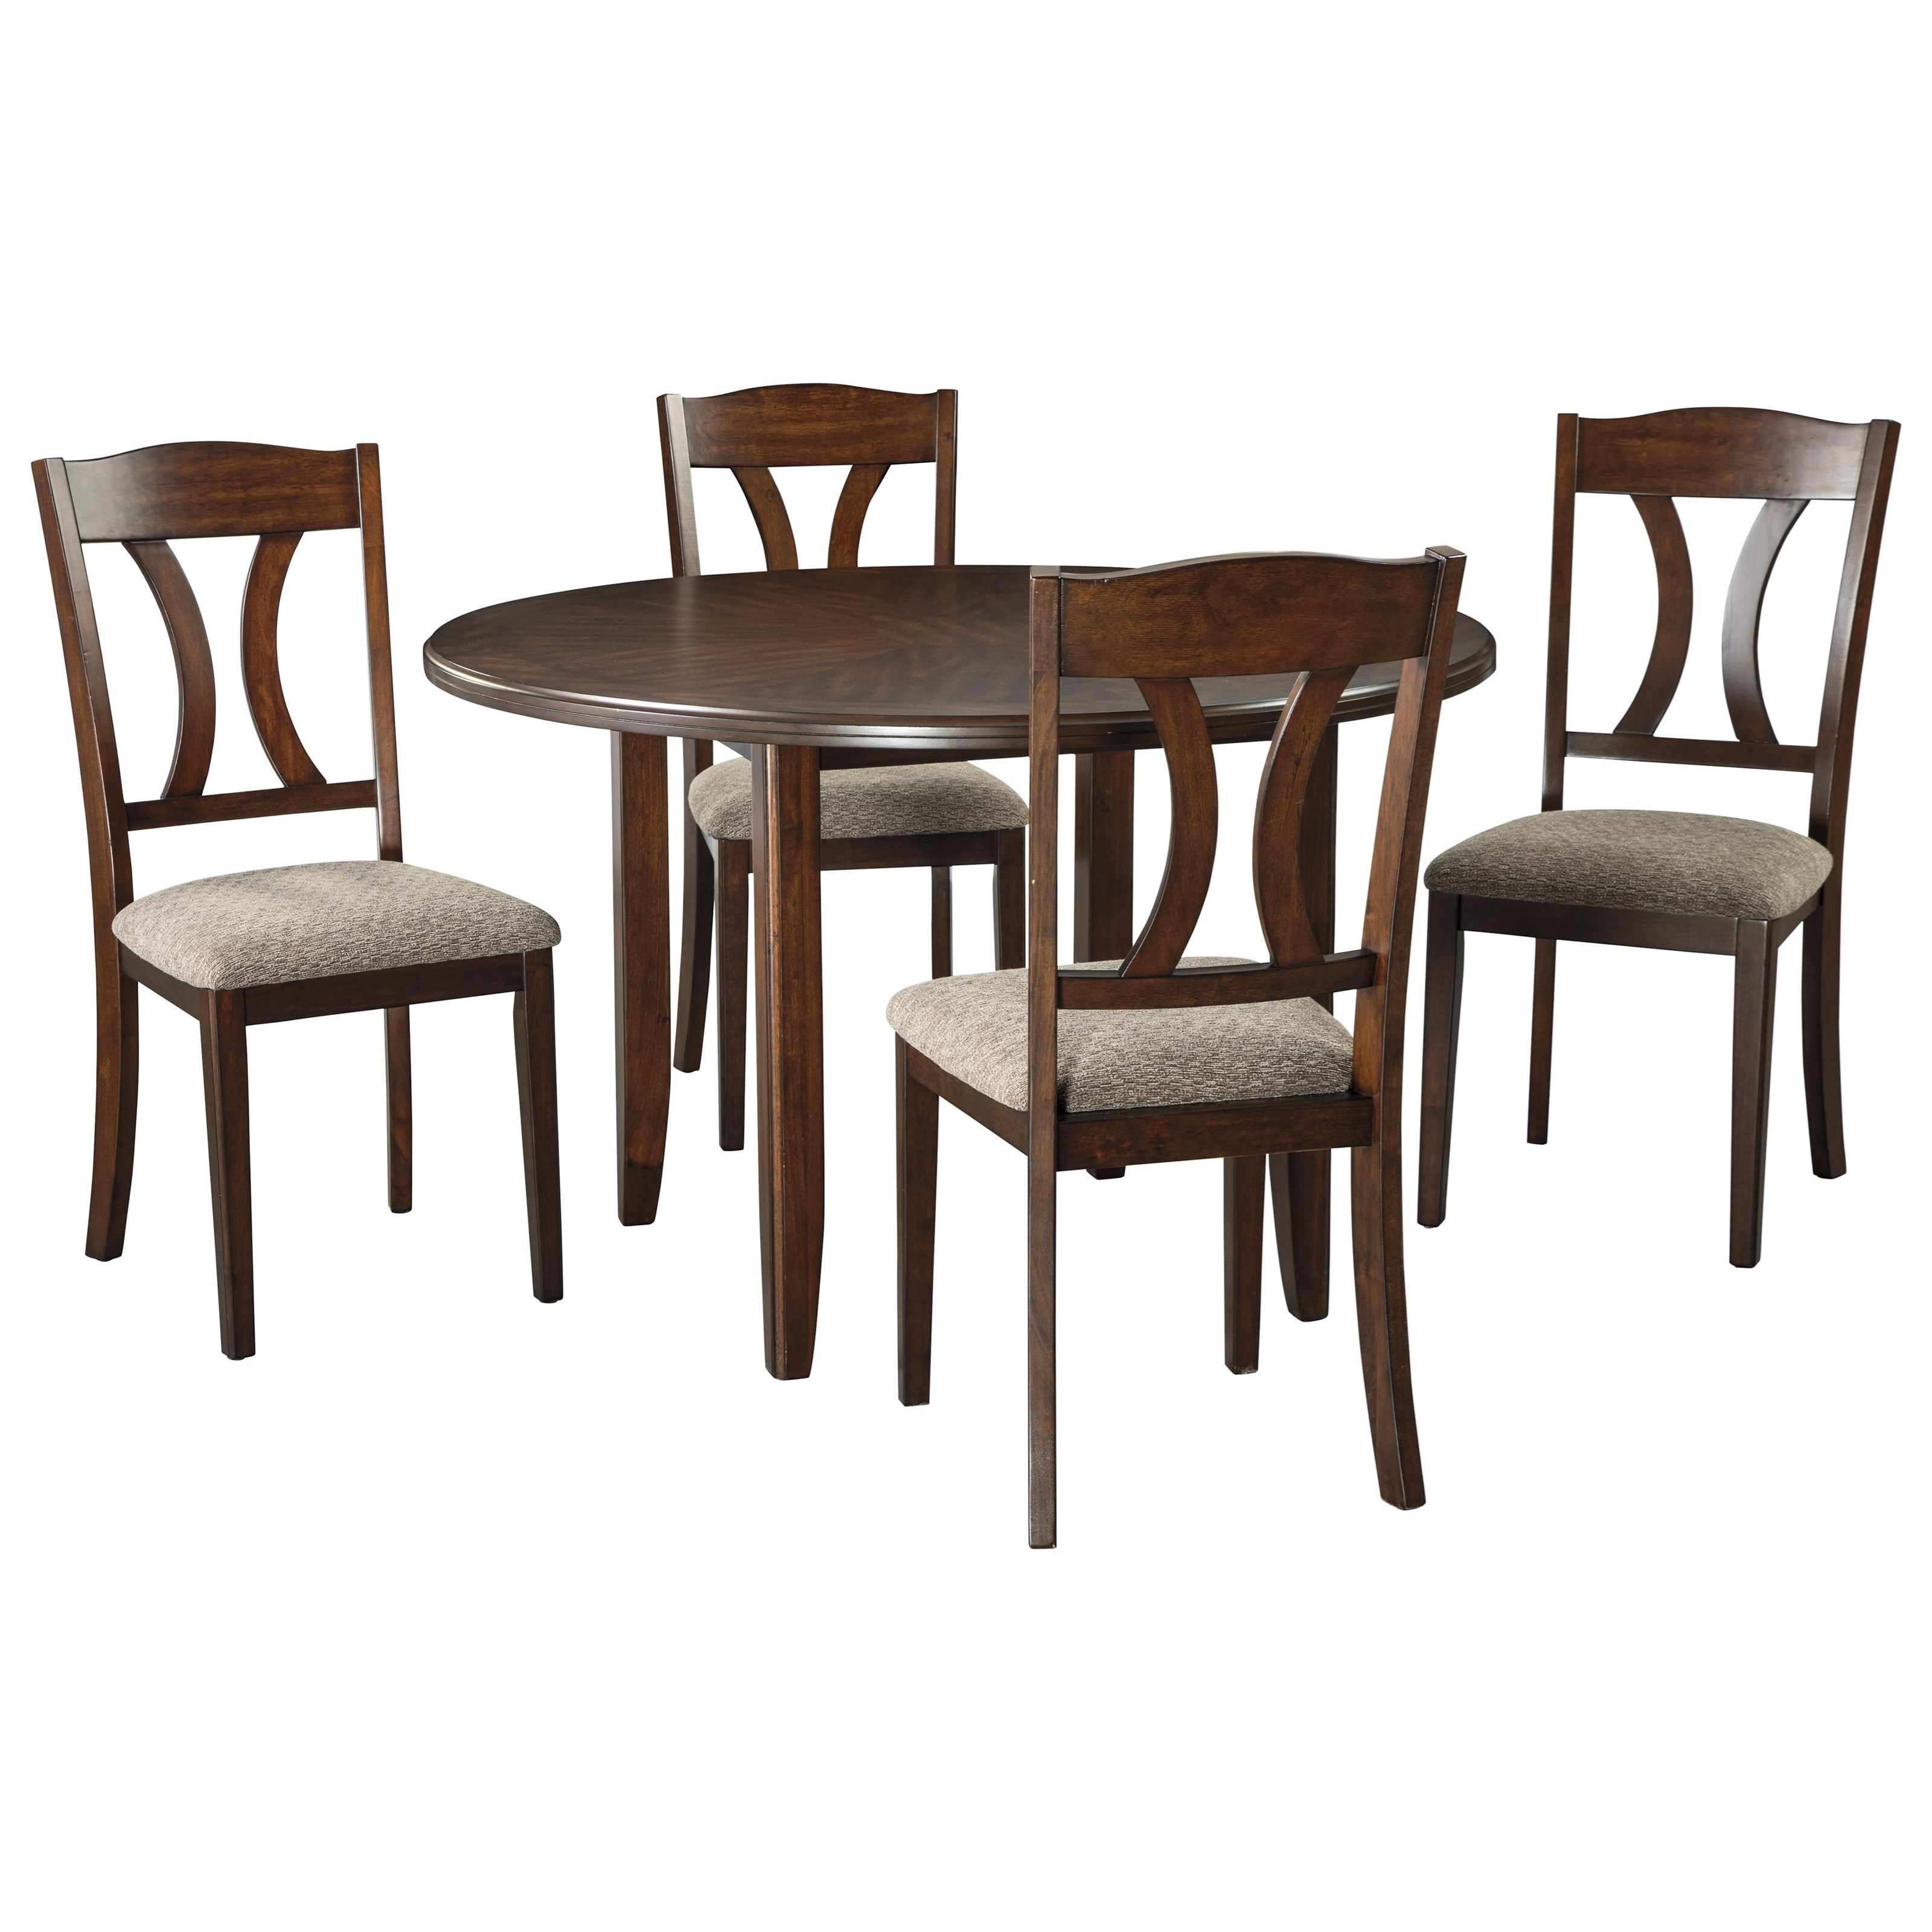 5 Piece Round Dining Set: Signature Design By Ashley Charnalo Transitional 5-Piece